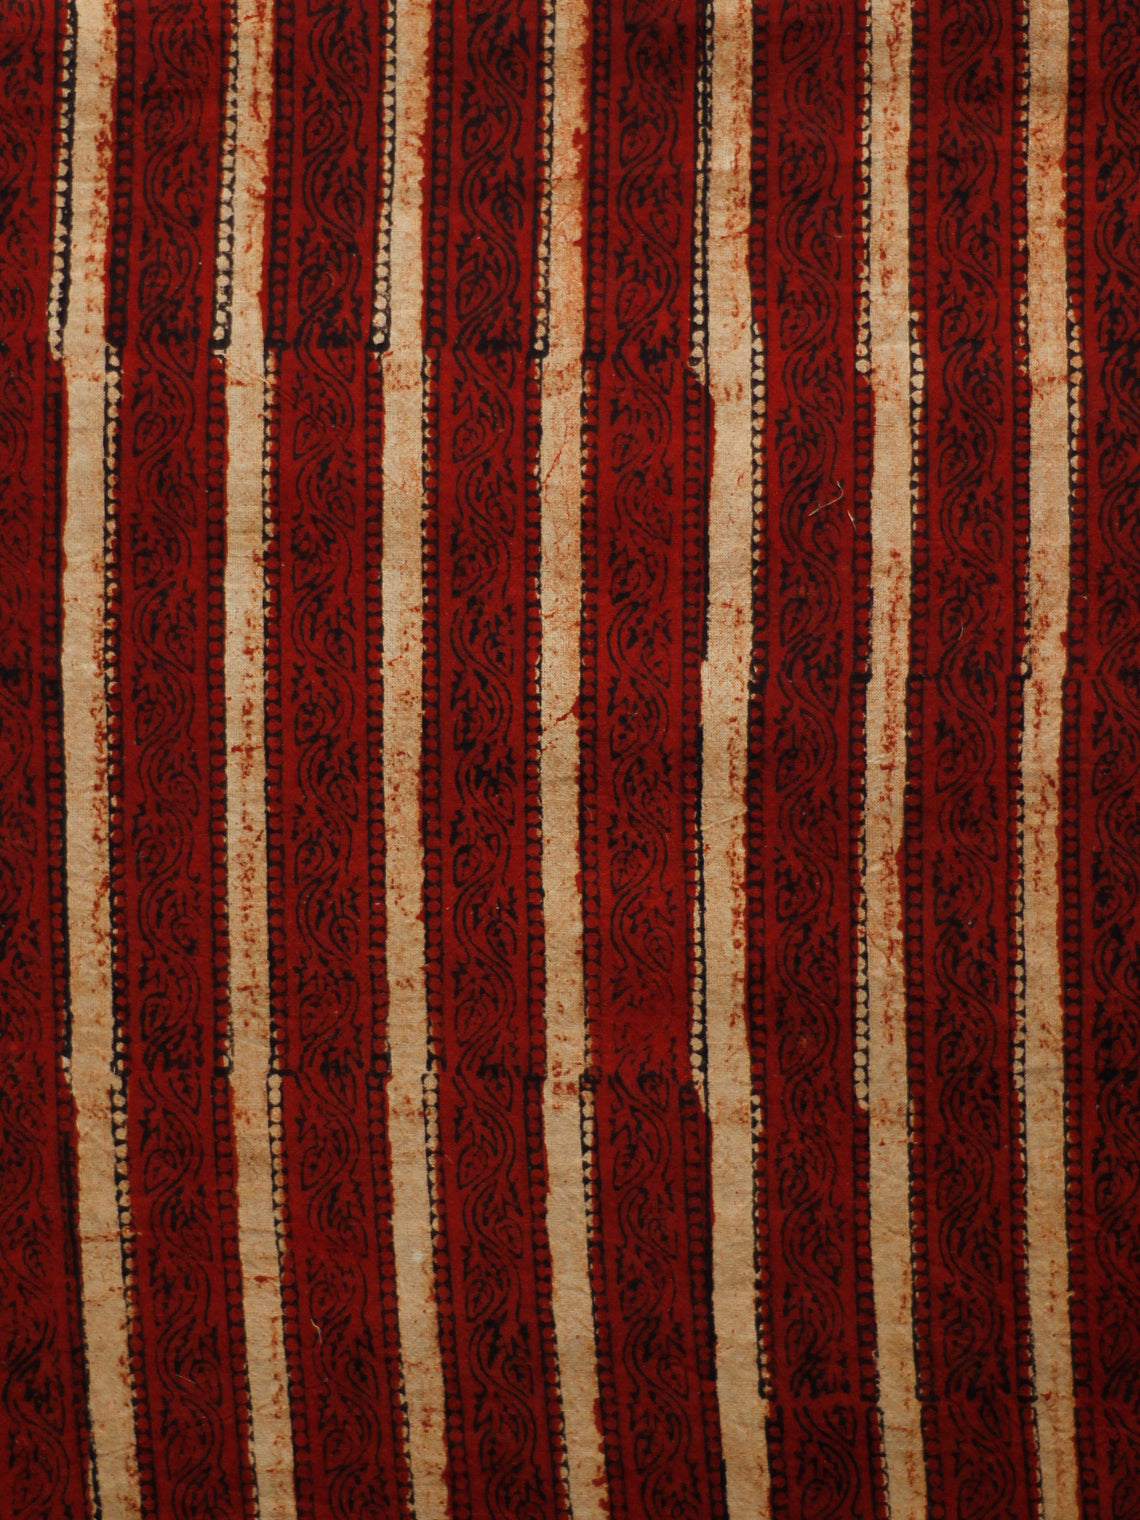 Maroon Ivory Black Hand Block Printed Cotton Fabric Per Meter - F001F1824